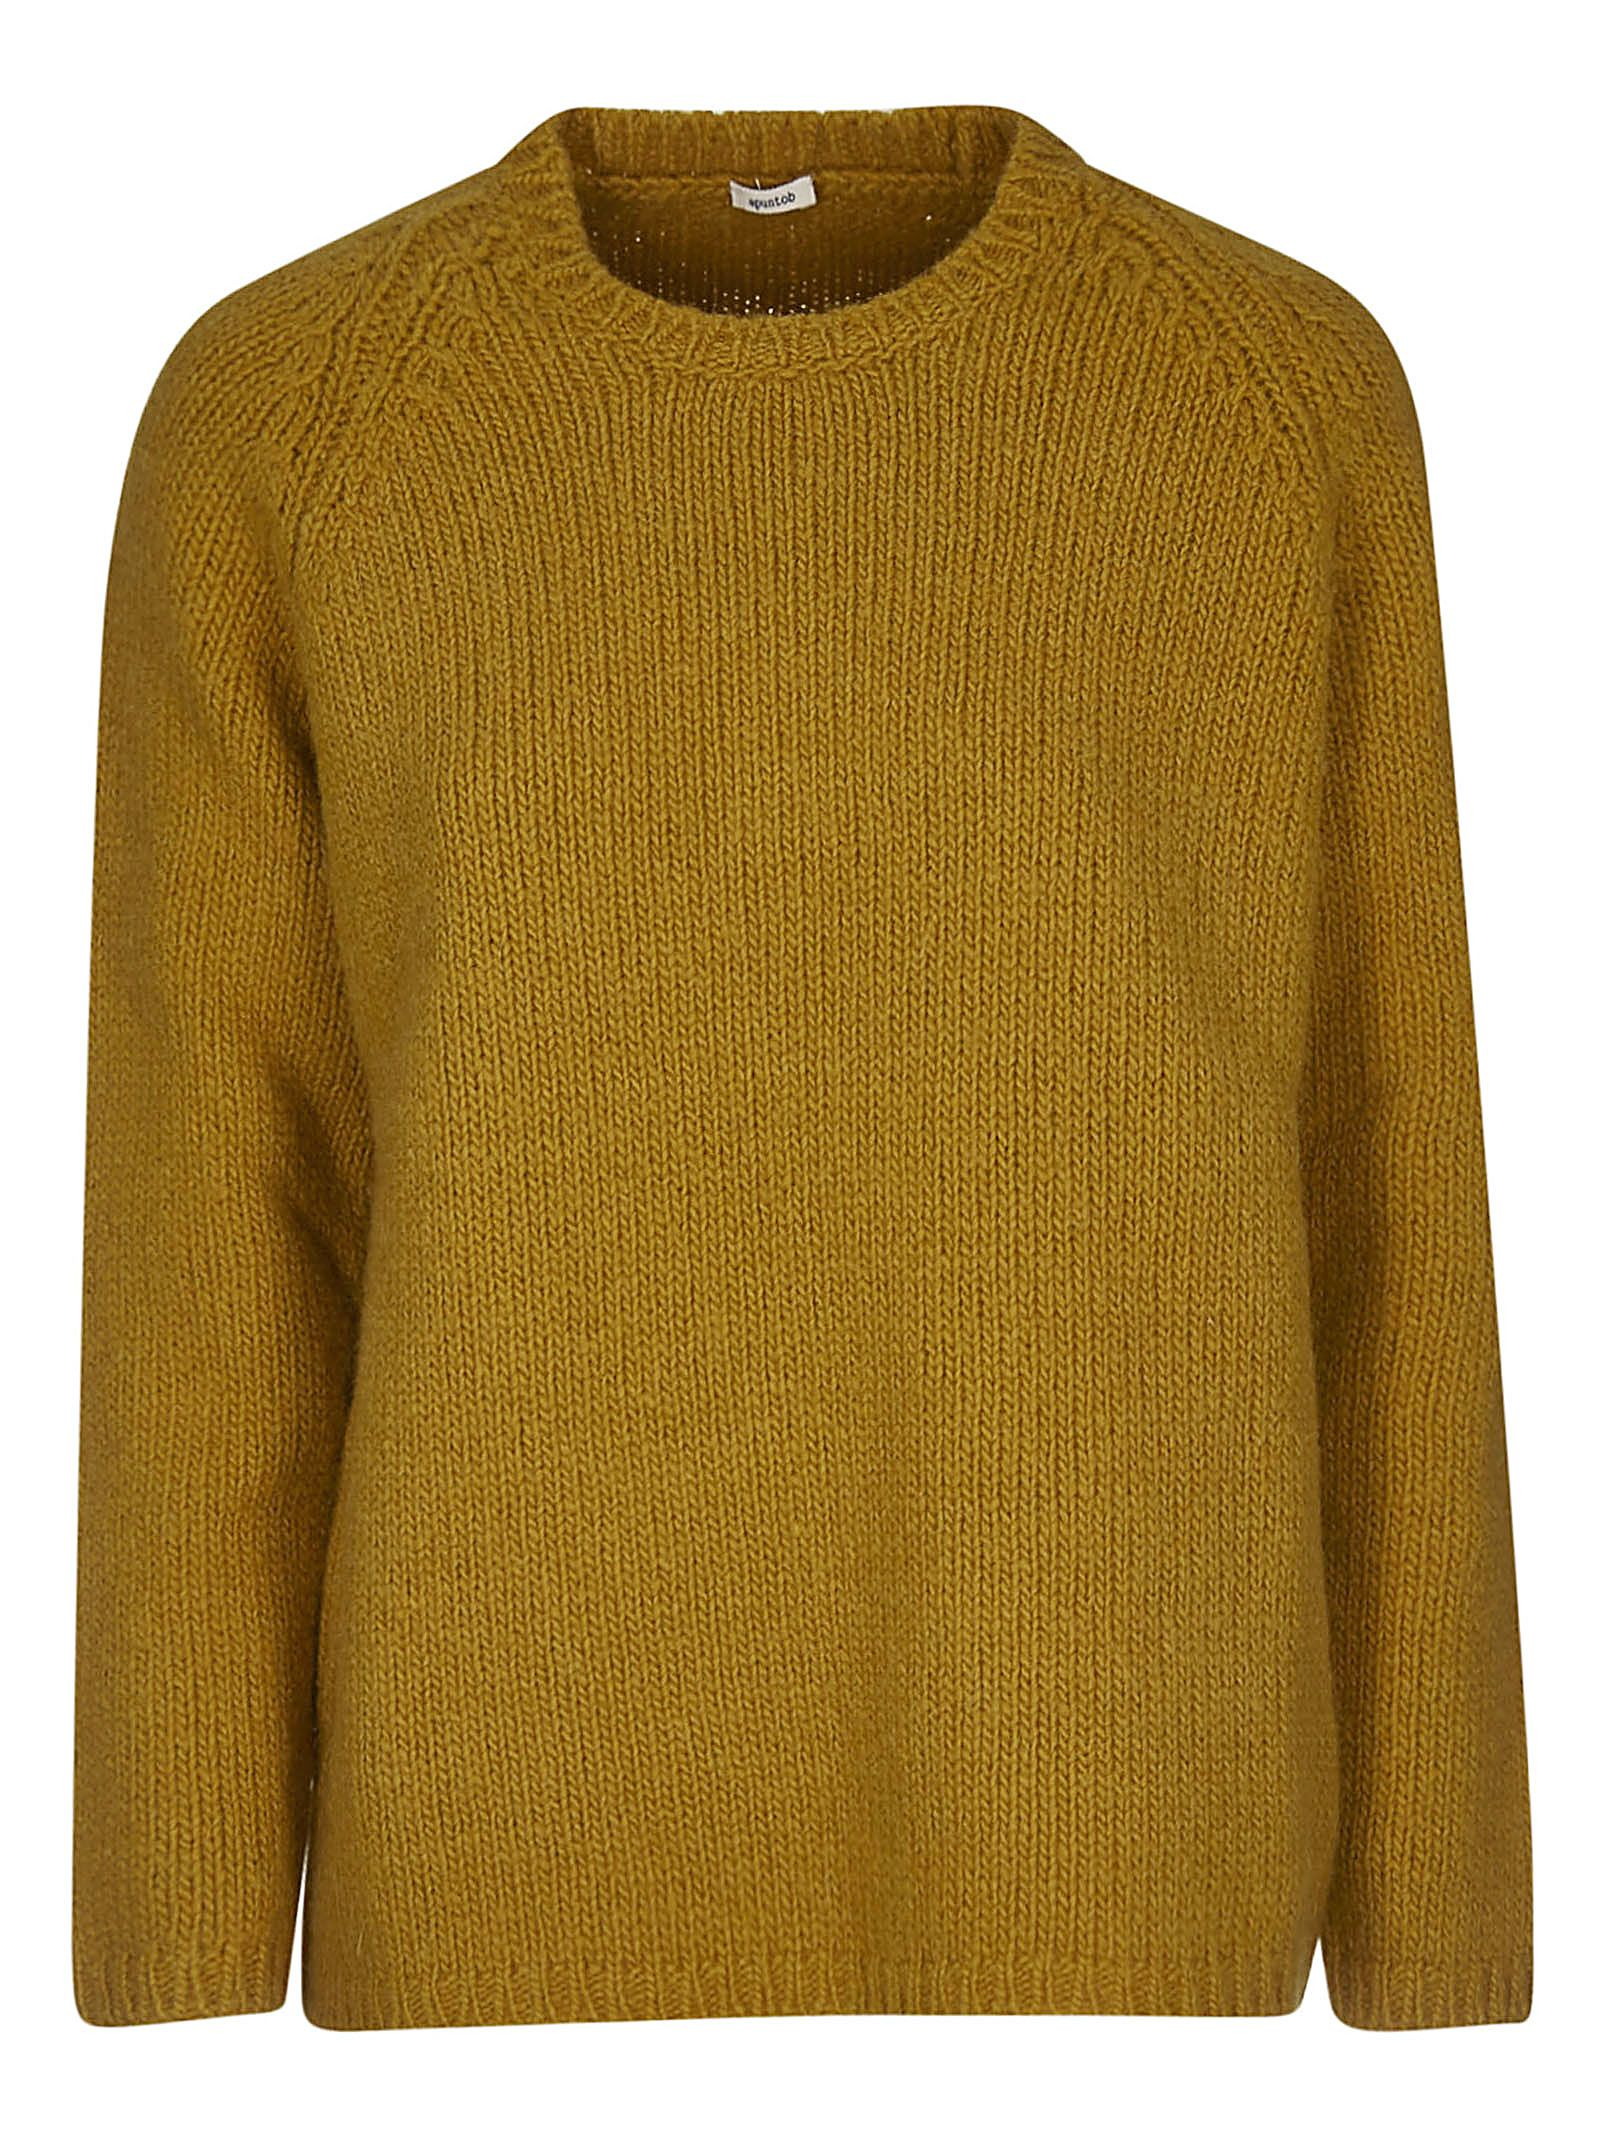 A PUNTO B A.B Knitted Sweater in Honey